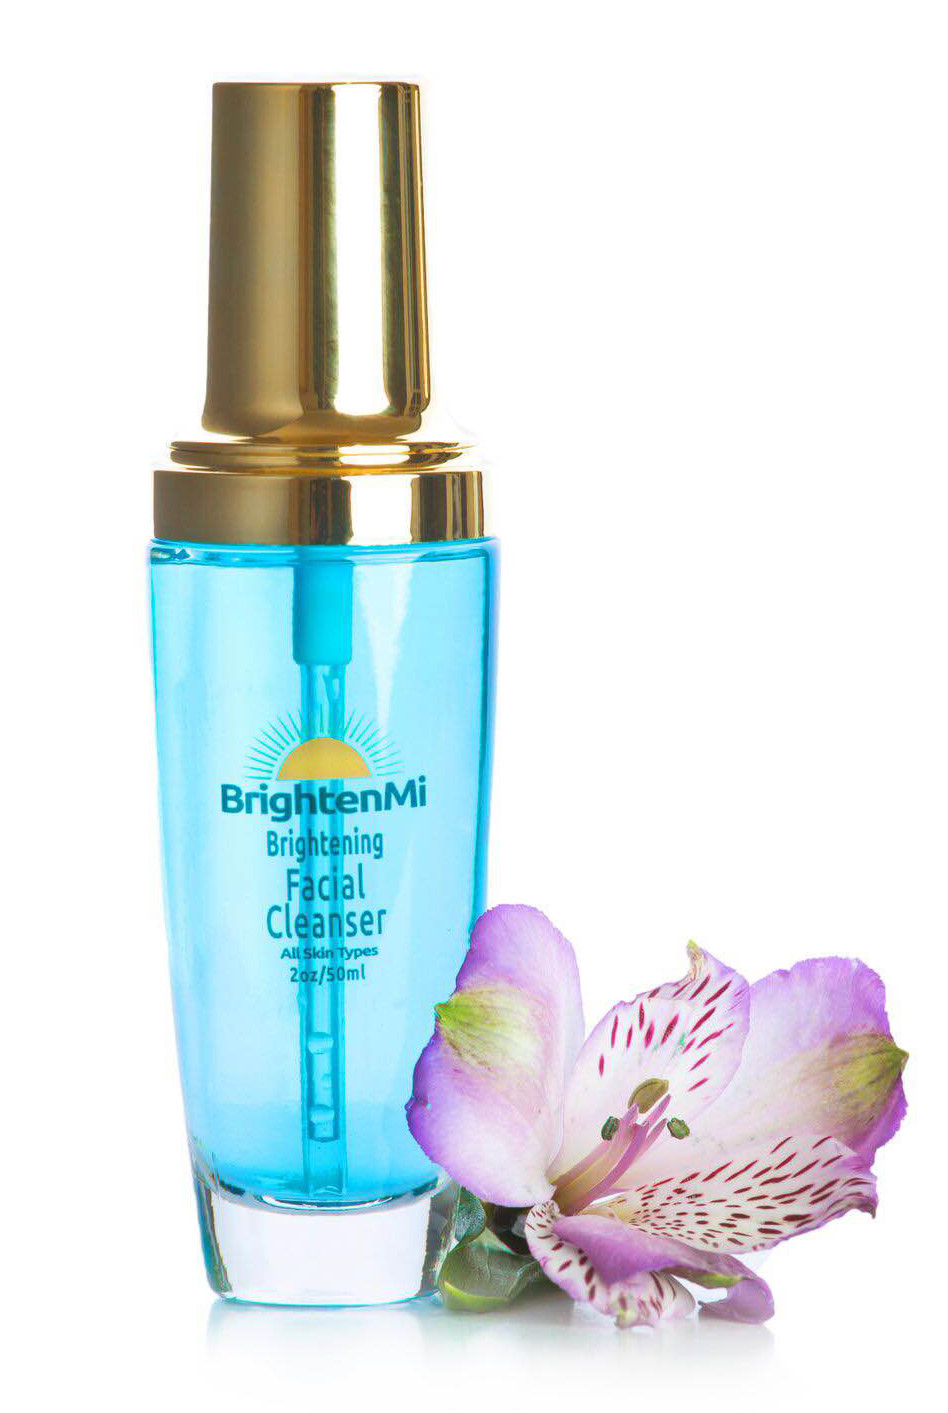 BrightenMi Brightening facial cleanser